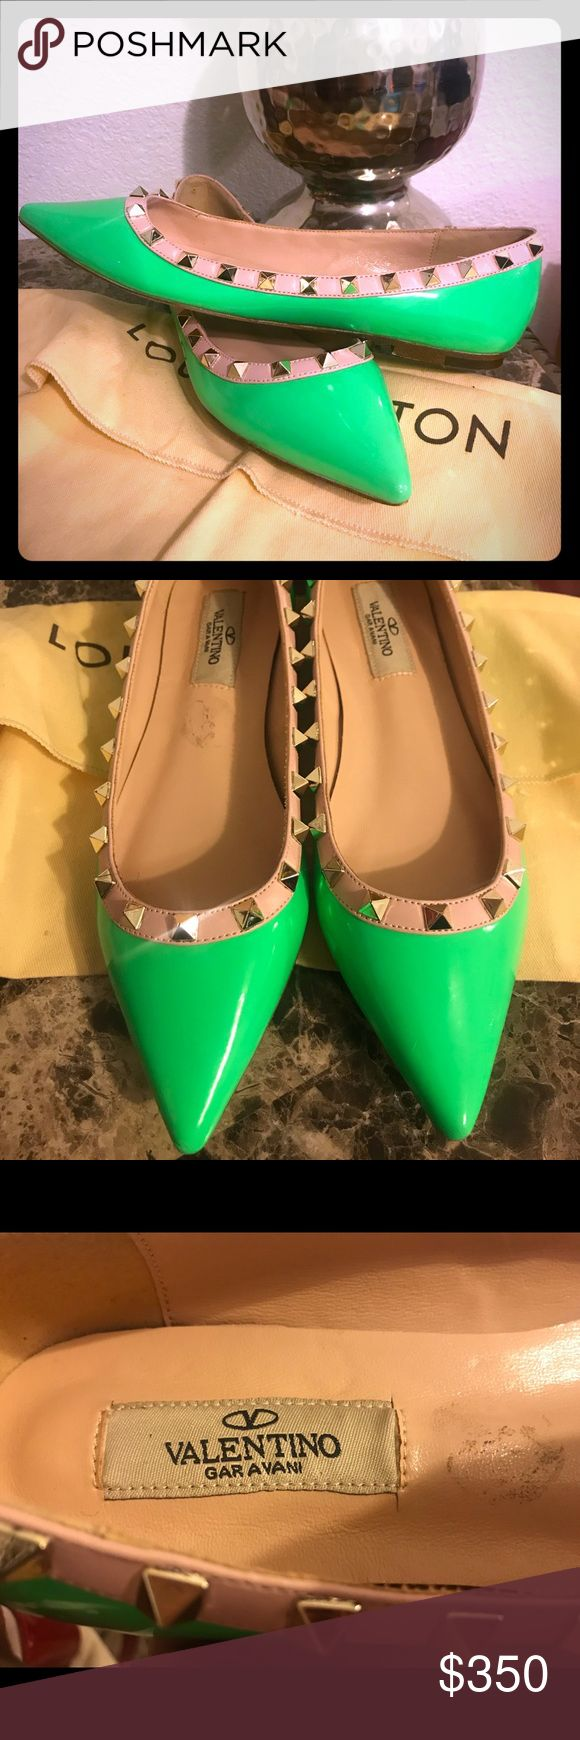 ONE DAY SALE.. Valentino Rock Stud flats 💚 Gorgeous bright green rock stud flats! Selling for $800 @ T.J. MAXX. Some minor scuffs and markings as pictured. Never been worn.. authentic. These are a size 38, and were made in Italy. This is a reposh item because they fit too big 😩 my loss is your gain. Valentino Shoes Flats & Loafers